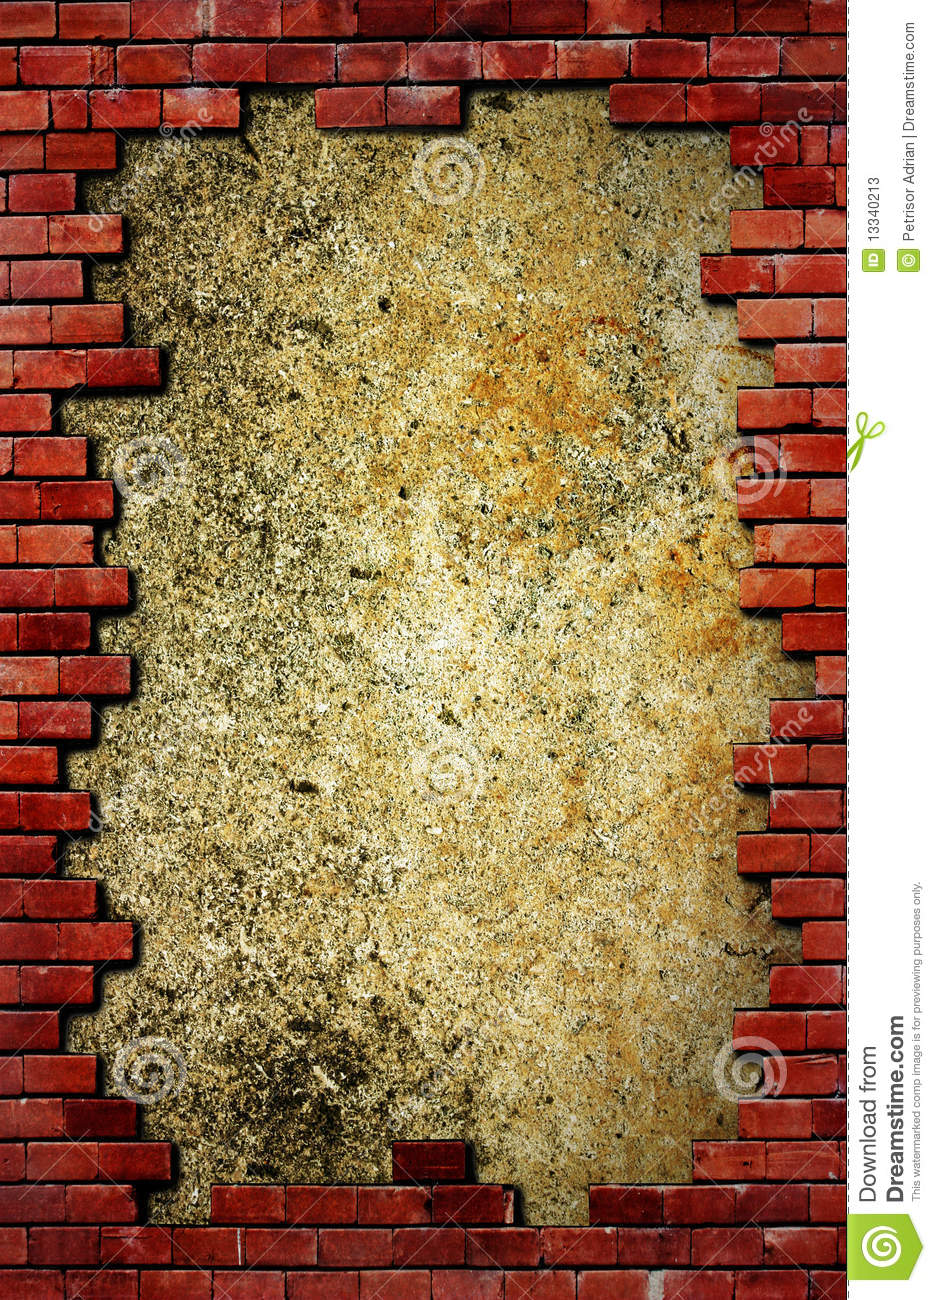 Grunge Brick Wall And Concrete Texture Stock Image - Image of decor ...